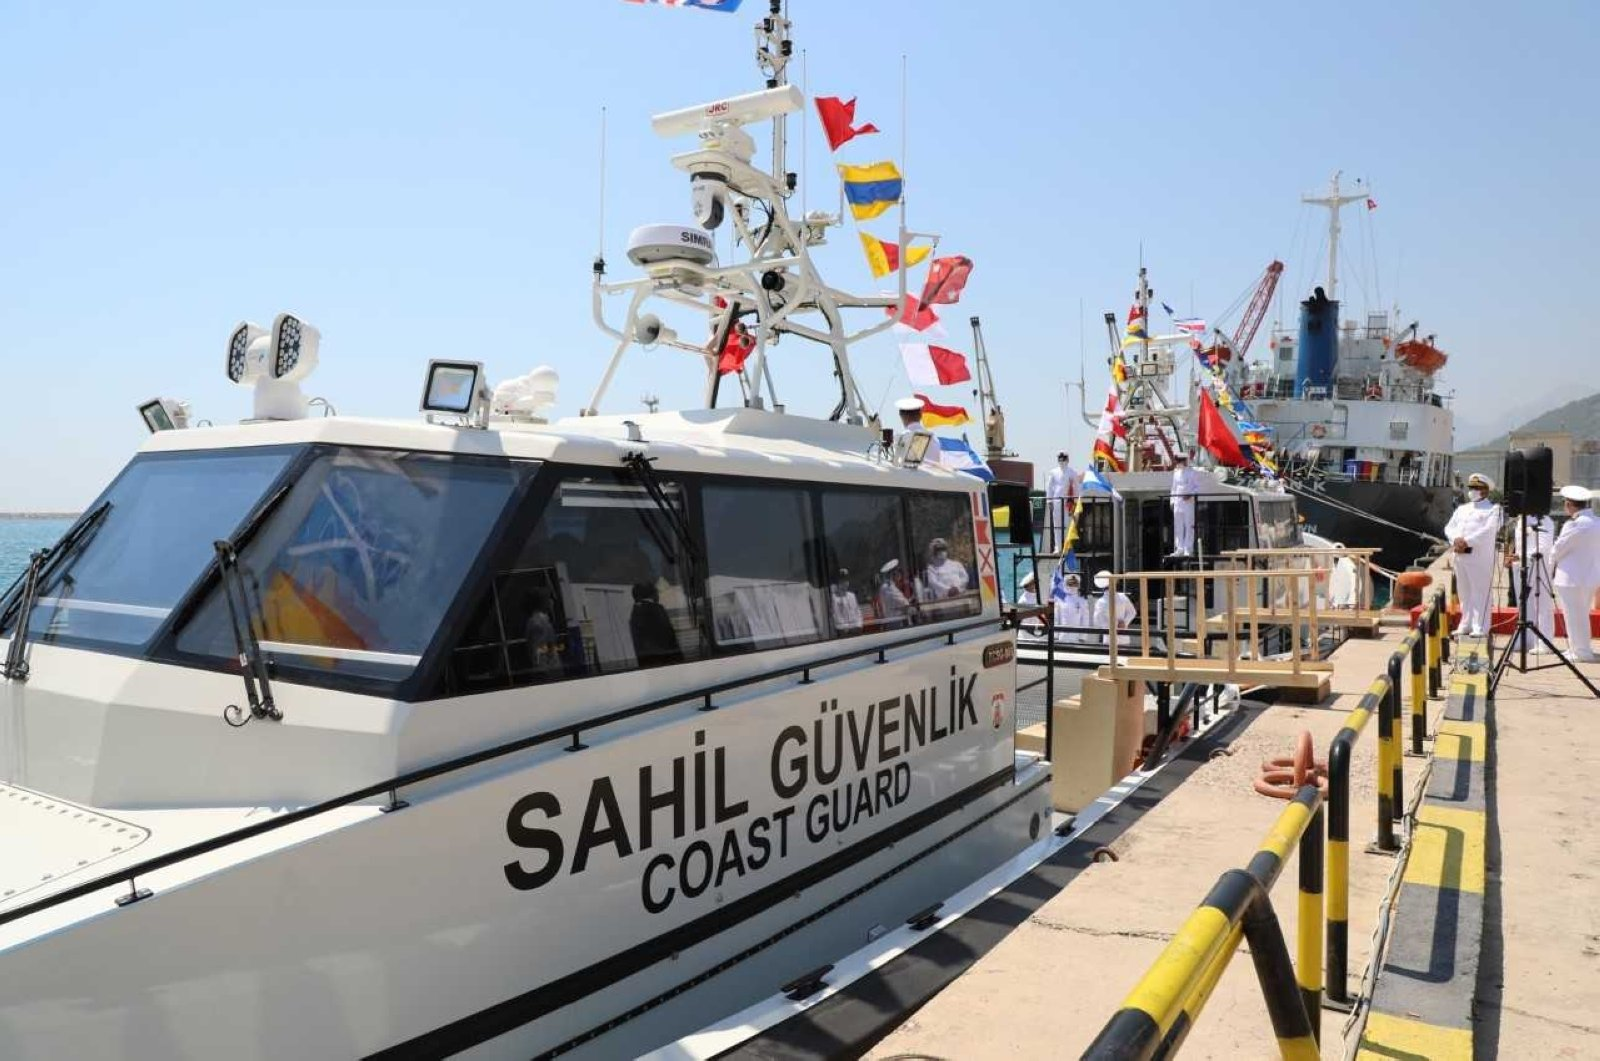 Two new search and rescue vessels are handed over to the Turkish Coast Guard Command through the partnership of the European Union and the International Organization of Migration (IOM) during a ceremony in Turkey's southern coastal city of Antalya, July 27, 2020. (Photo from the IOM Turkey Public Information Unit)